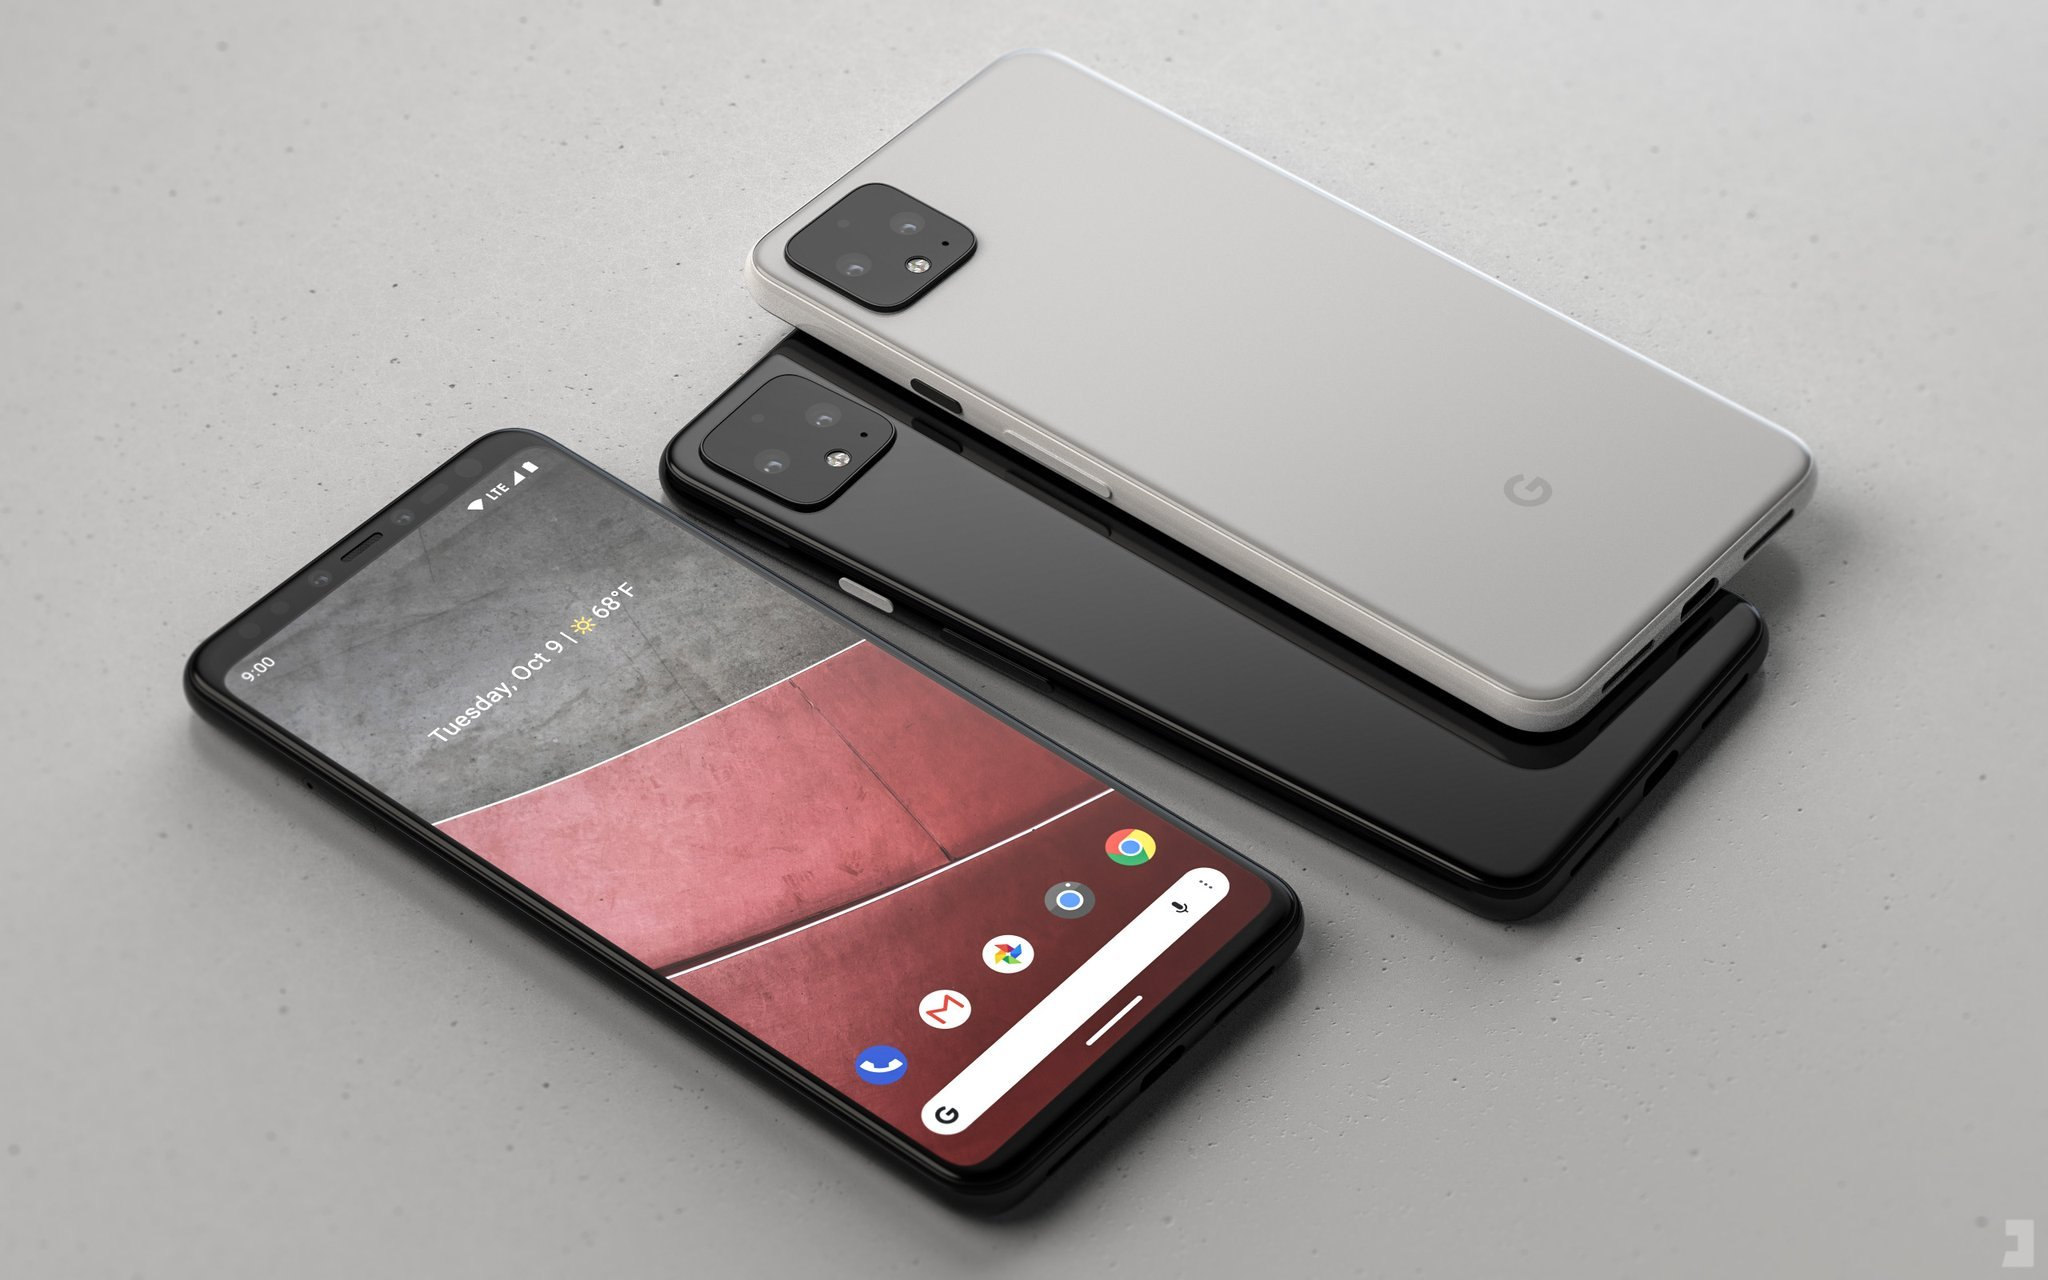 Pixel 4 XL's design just leaked again, and it still doesn't look good